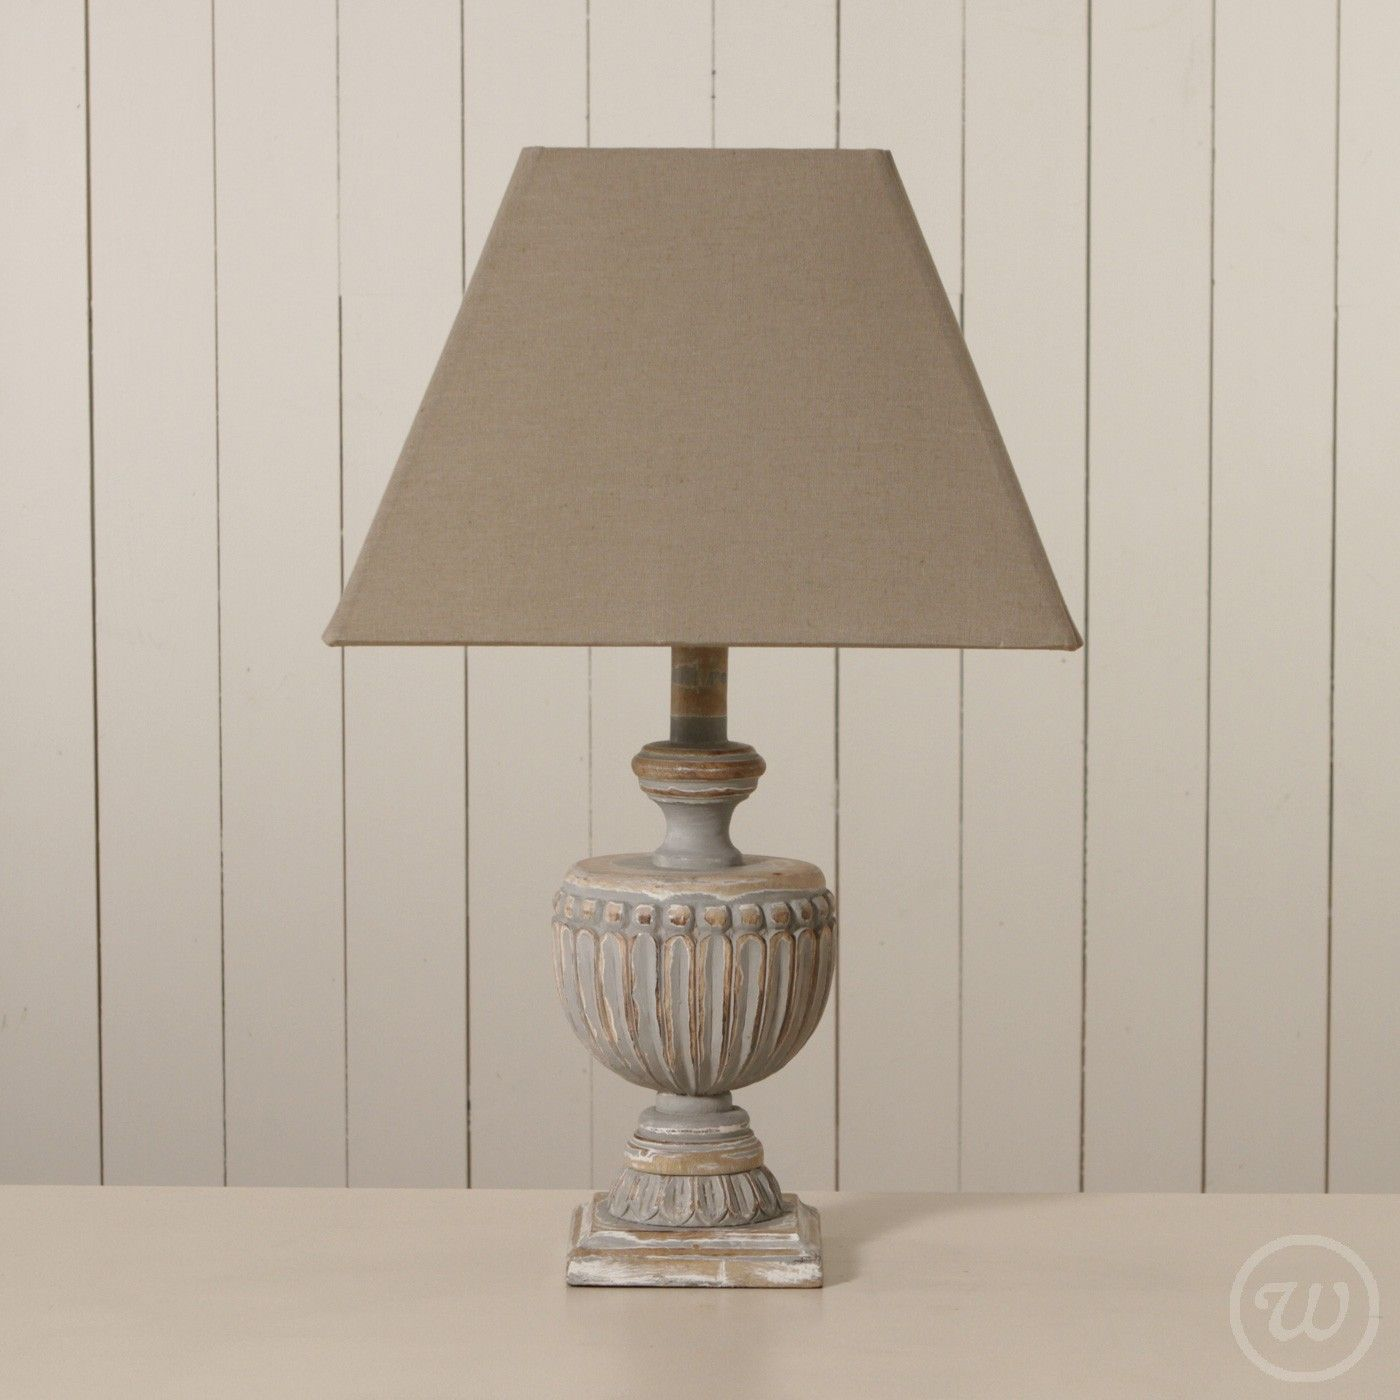 Solid Wood Antique Style Table Lamp   Lighting